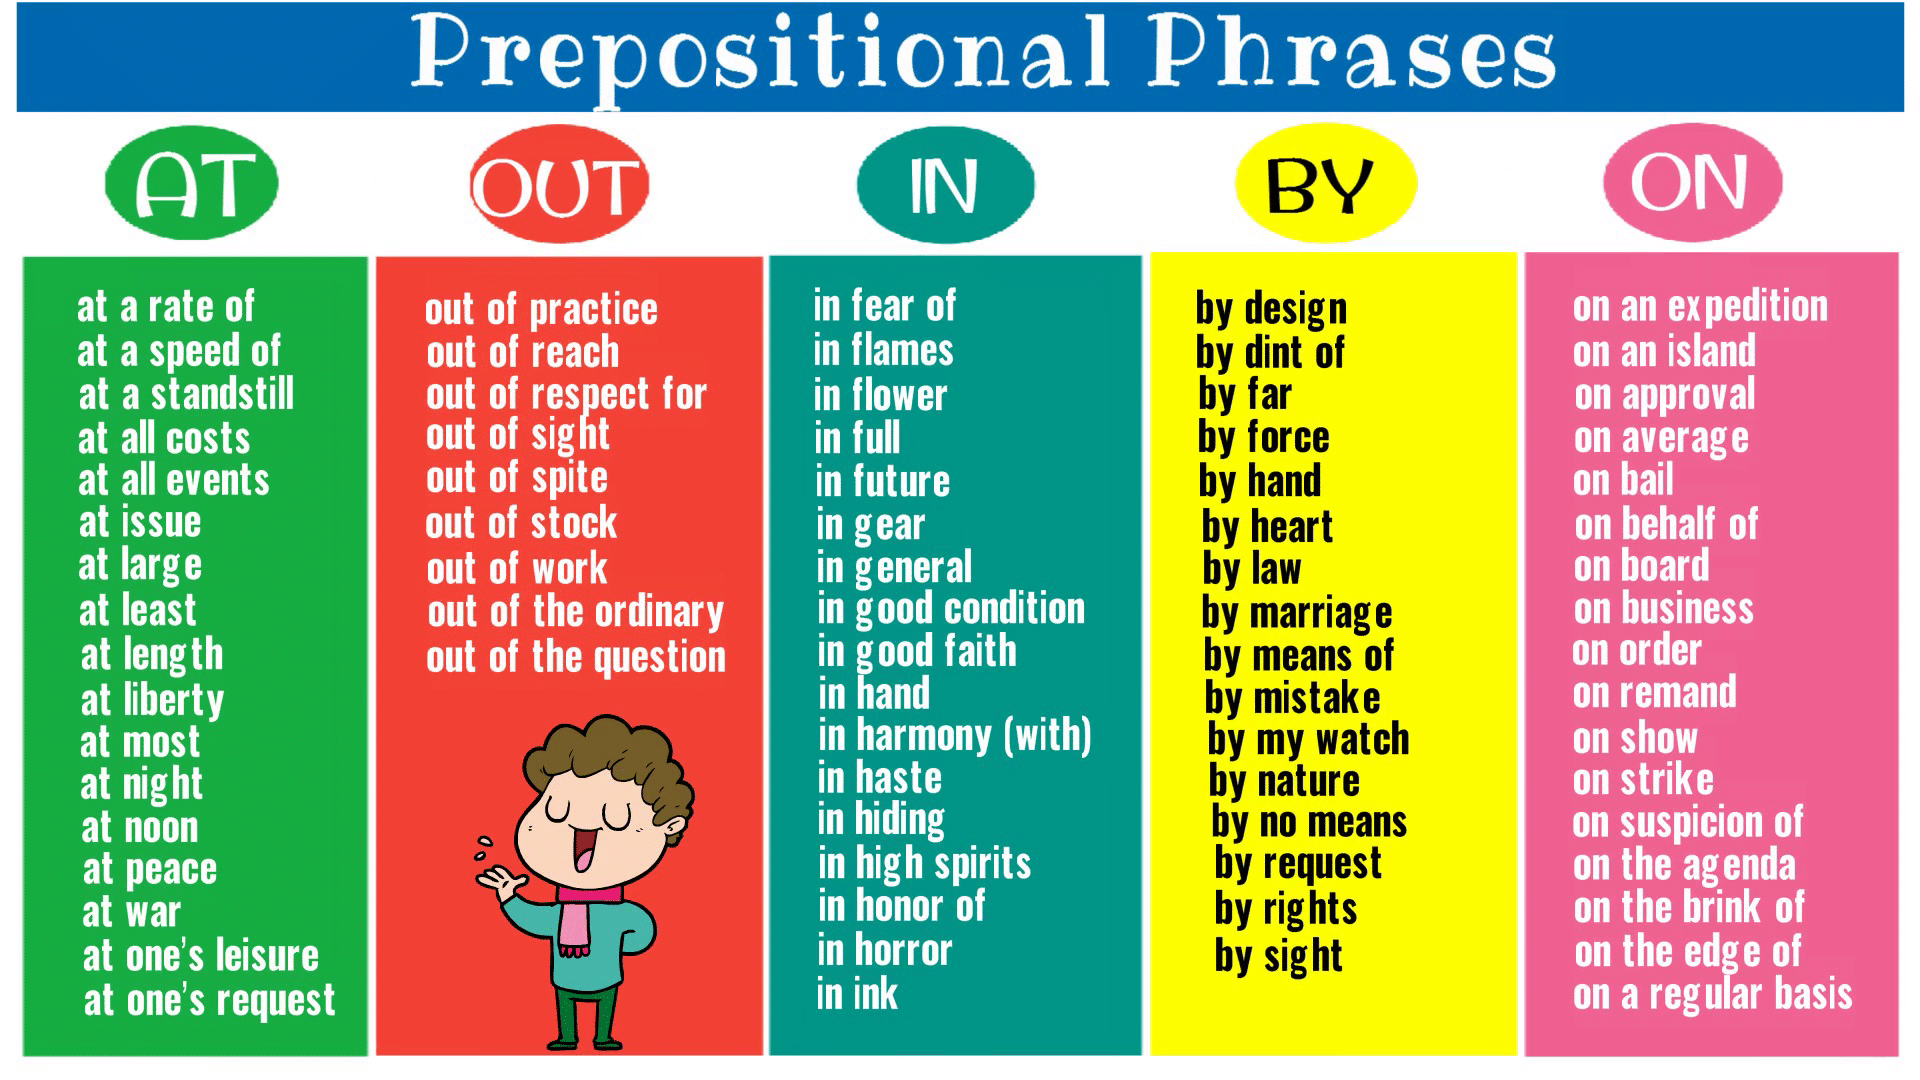 List of Prepositional Phrases